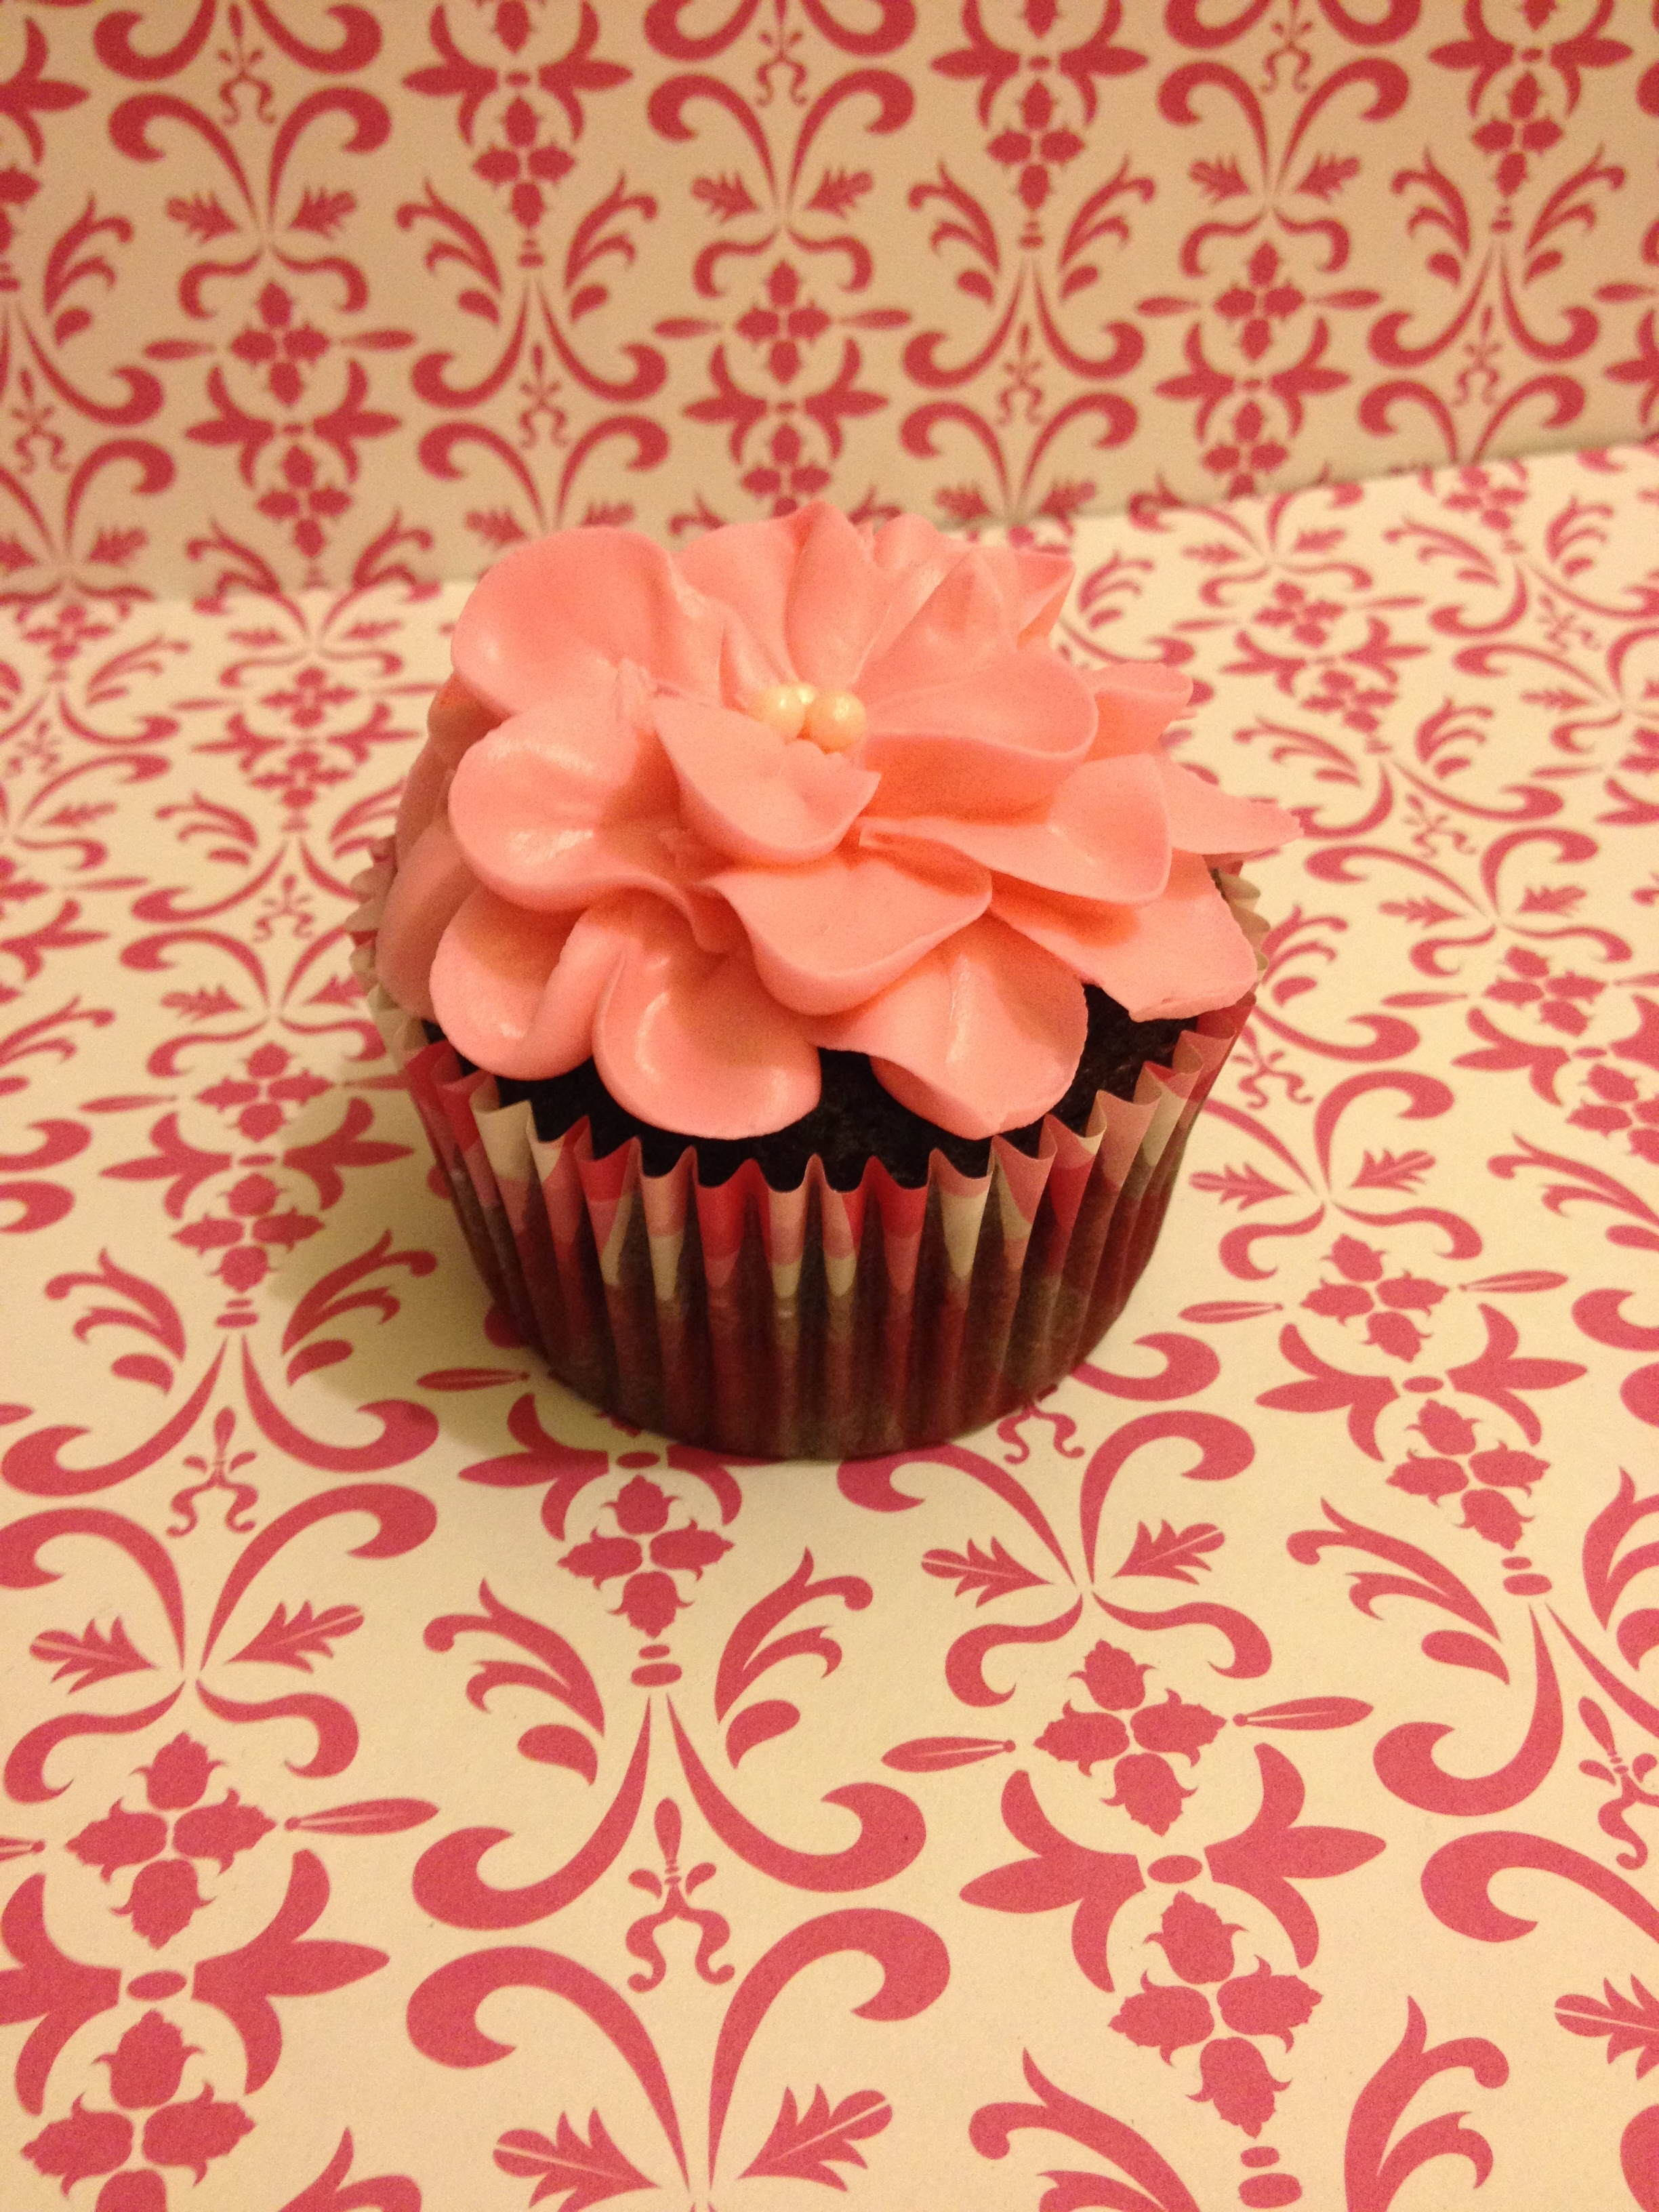 Apple Blossom Cupcake apple blossom cupcake